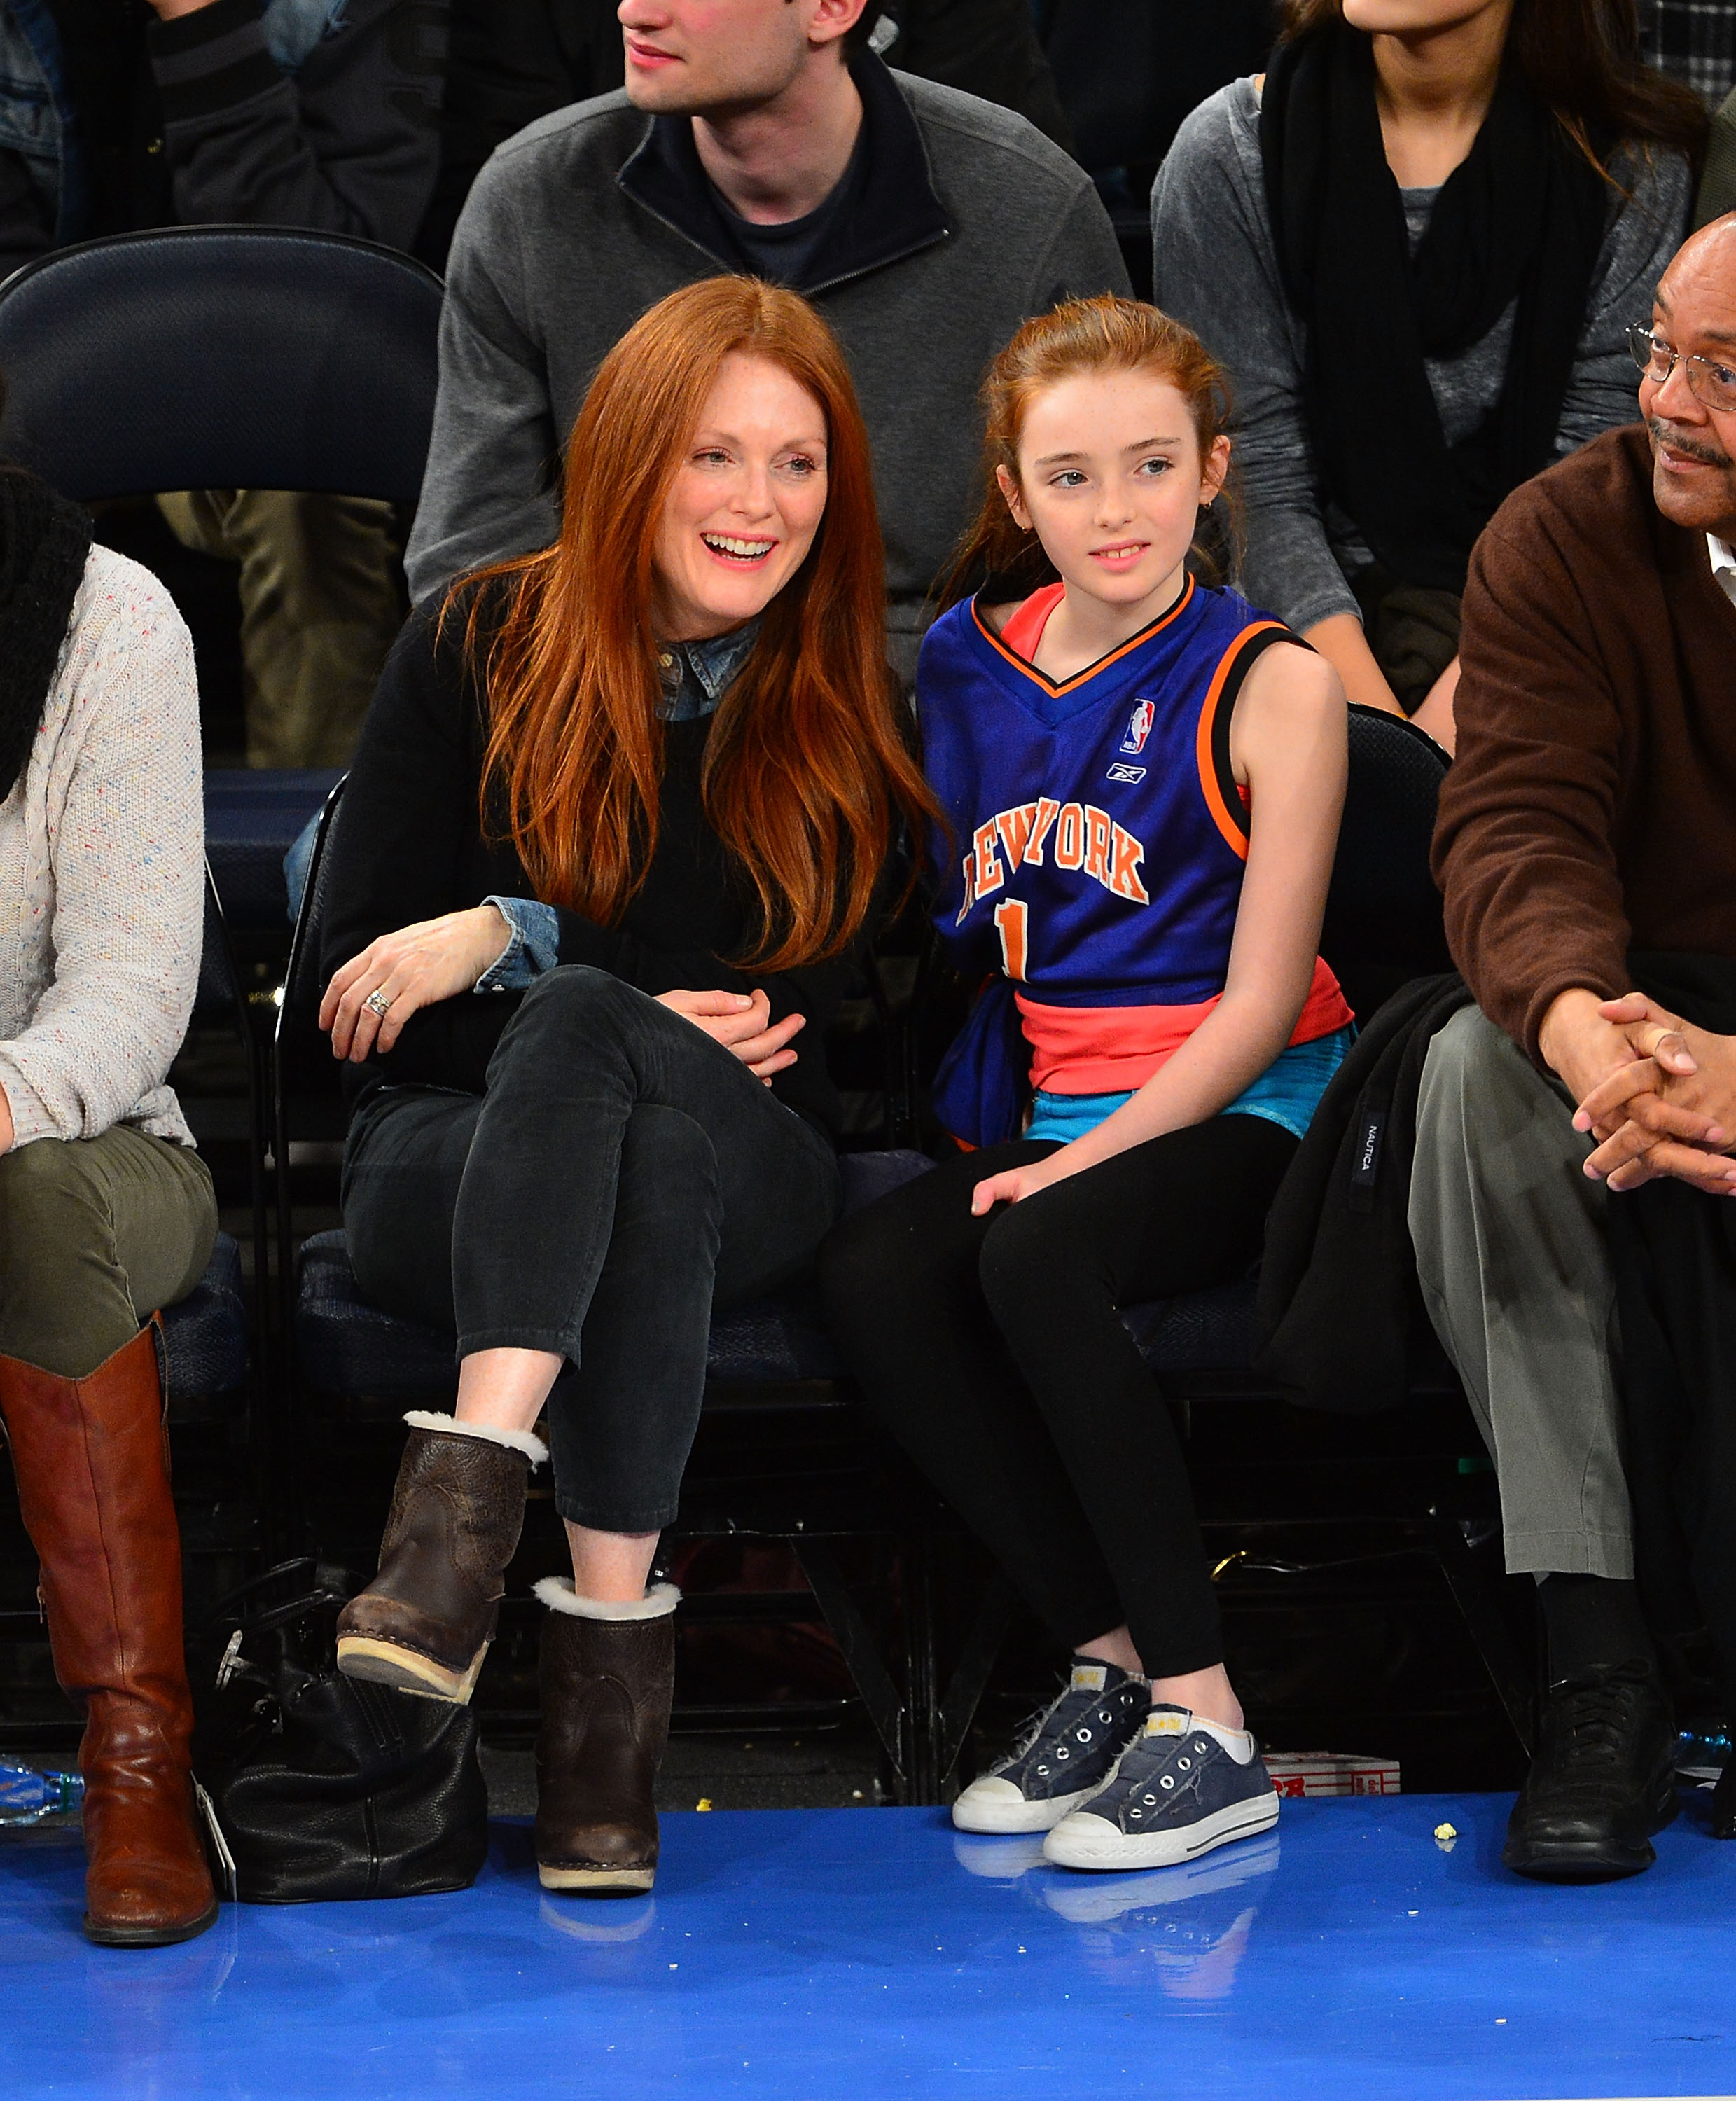 Julianne Moore took in a NY Knicks game with her adorable daughter, Liv Freundlich, in December 2012.